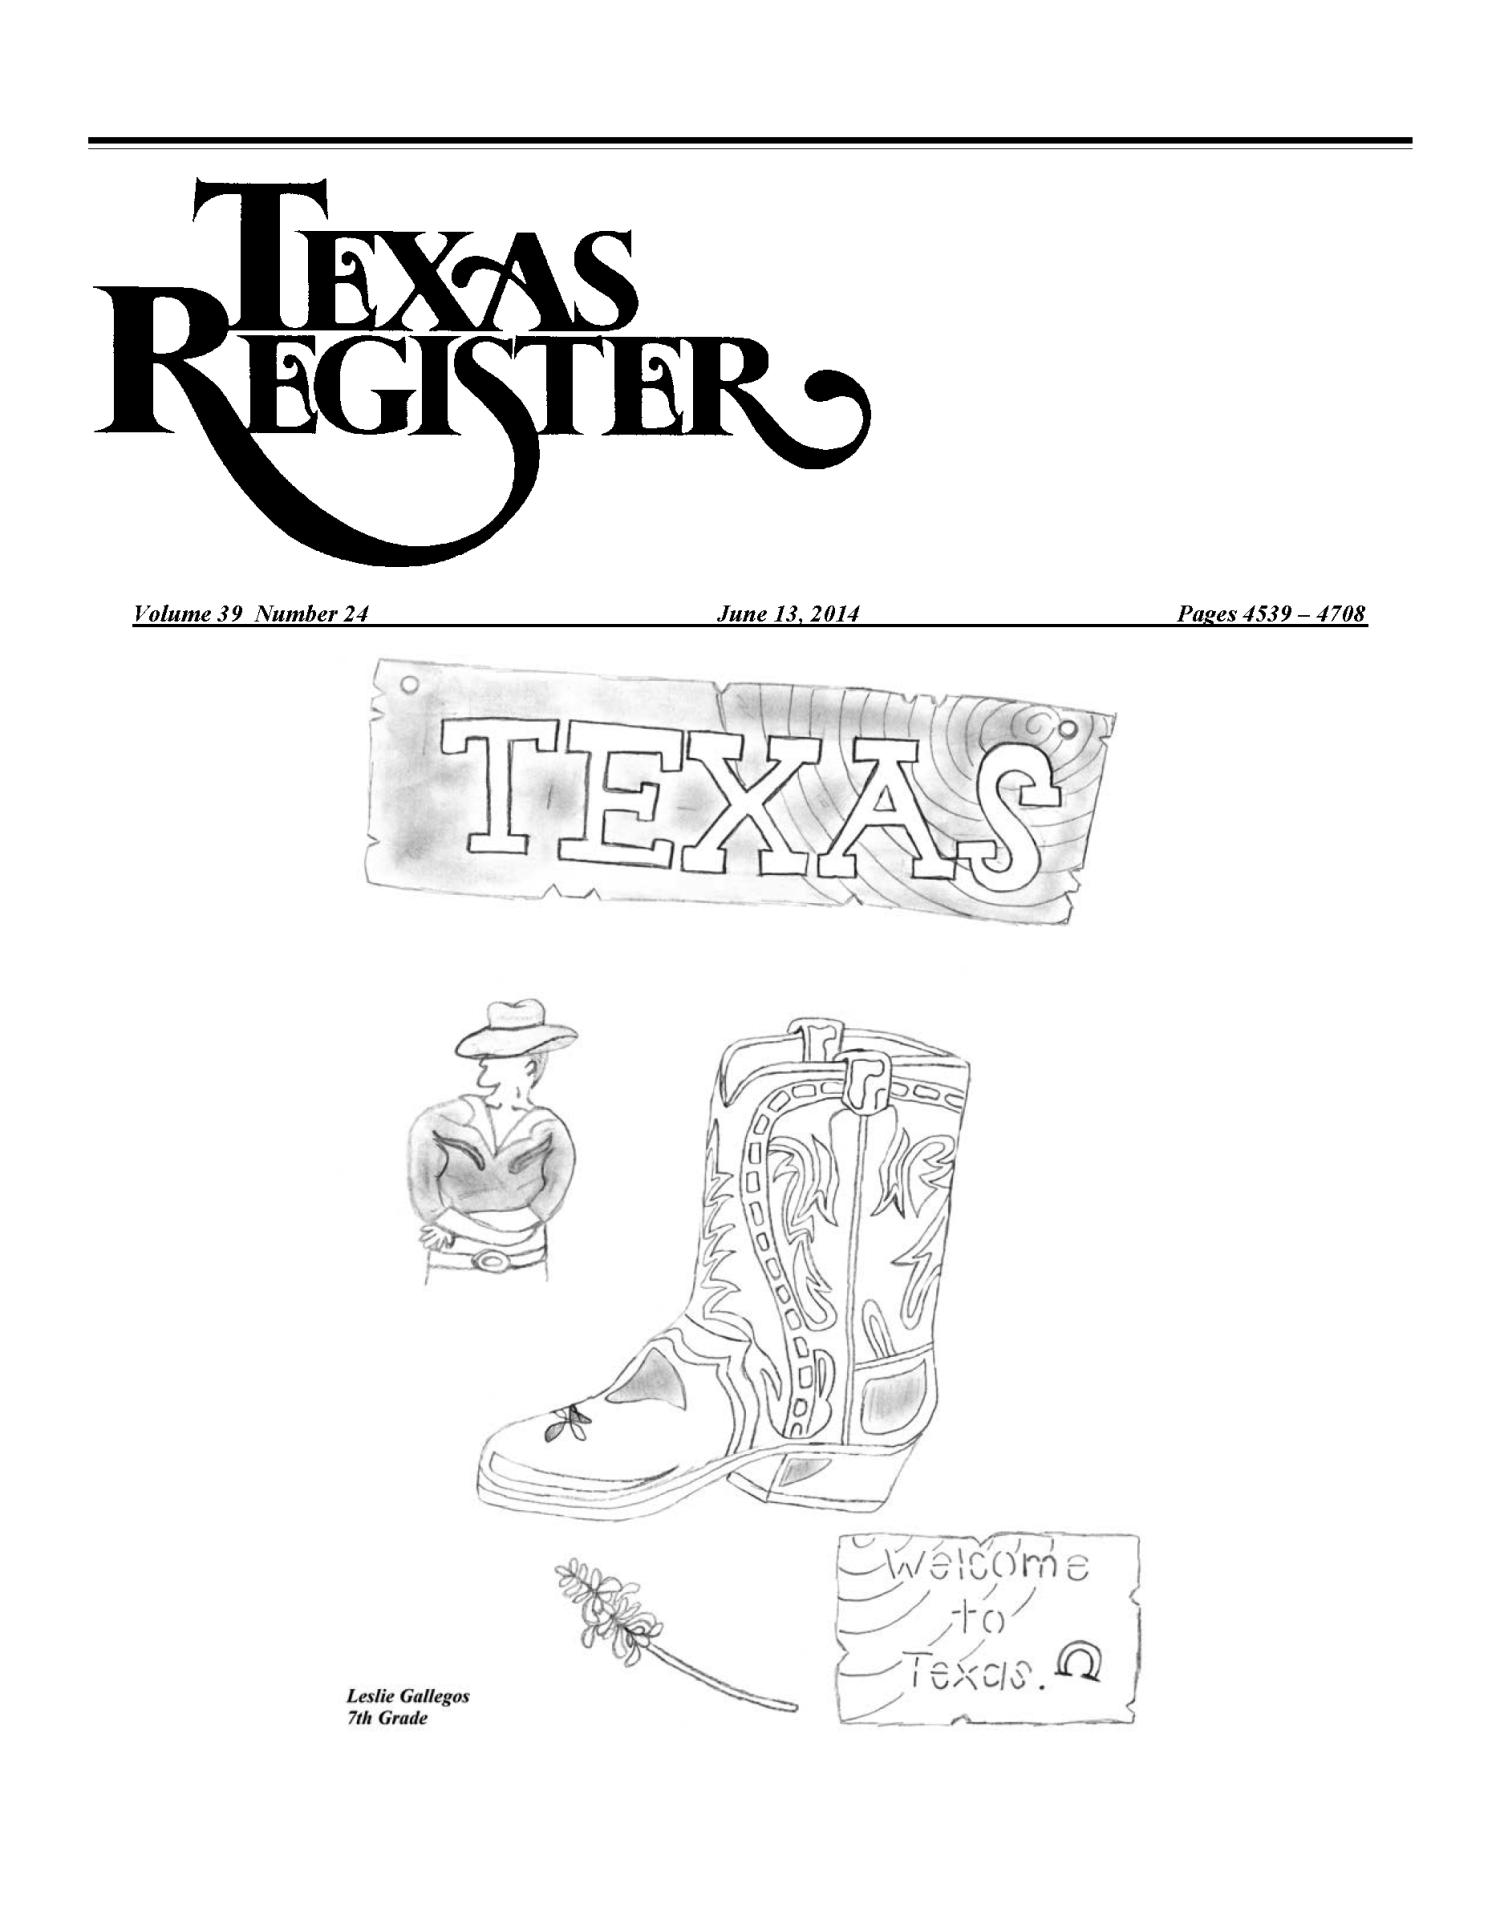 Texas Register, Volume 39, Number 24, Pages 4539-4708